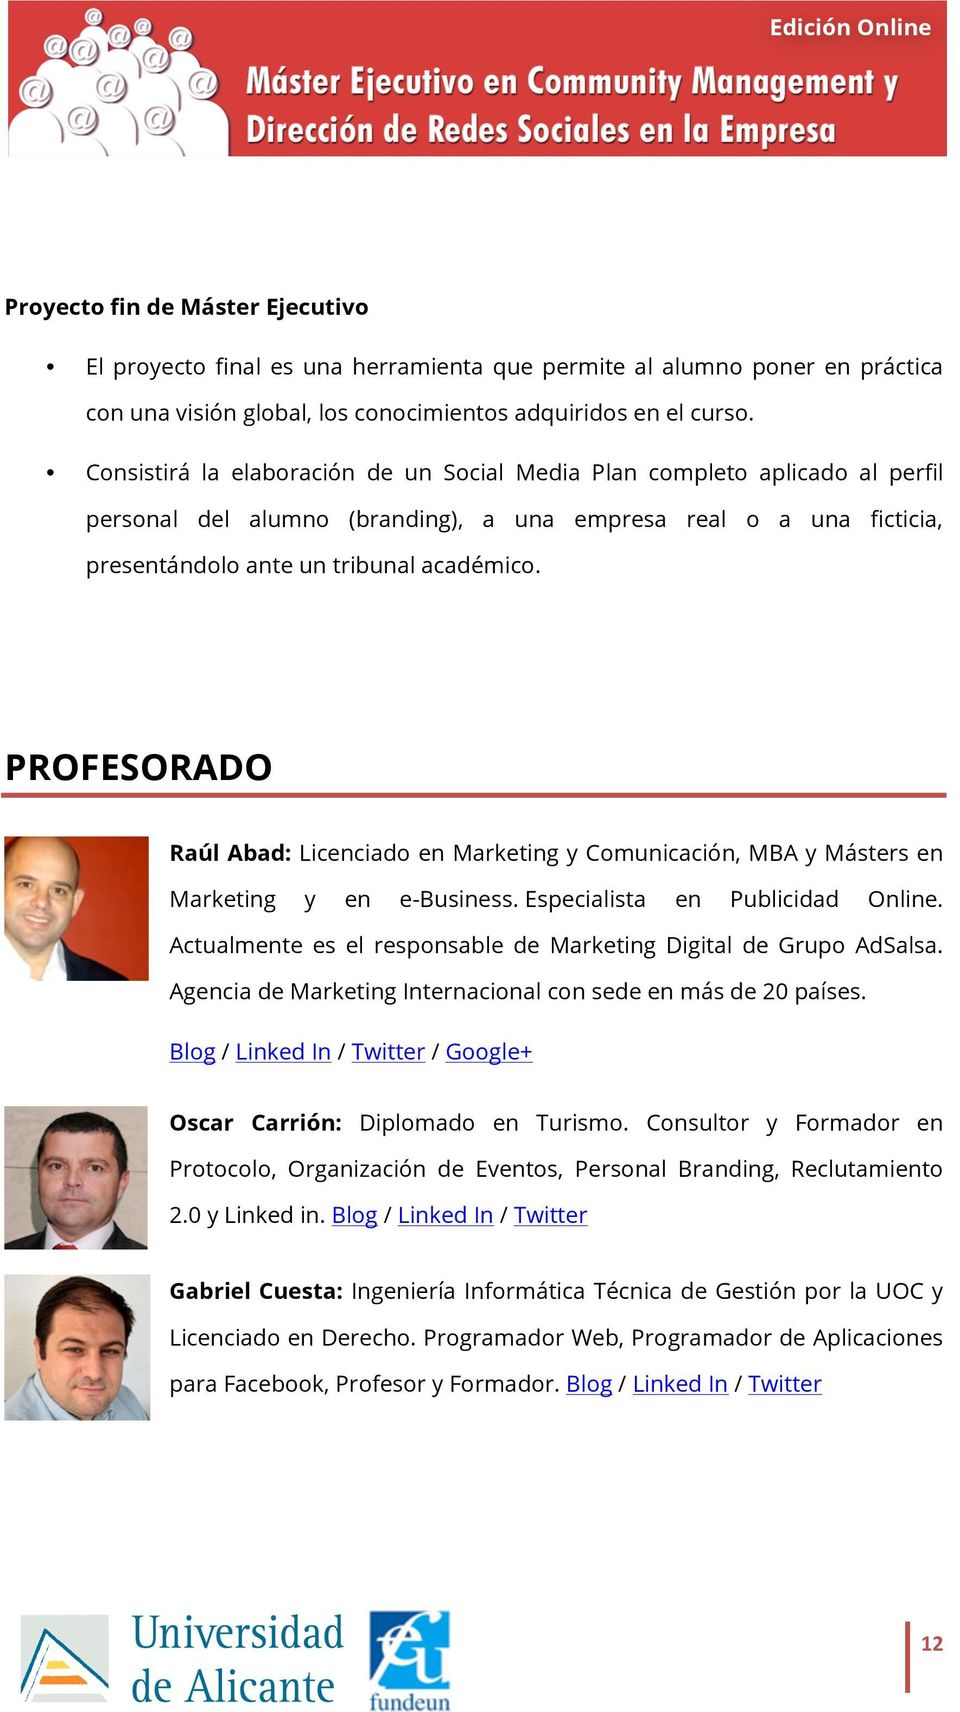 PROFESORADO Raúl Abad: Licenciado en Marketing y Comunicación, MBA y Másters en Marketing y en e-business. Especialista en Publicidad Online.